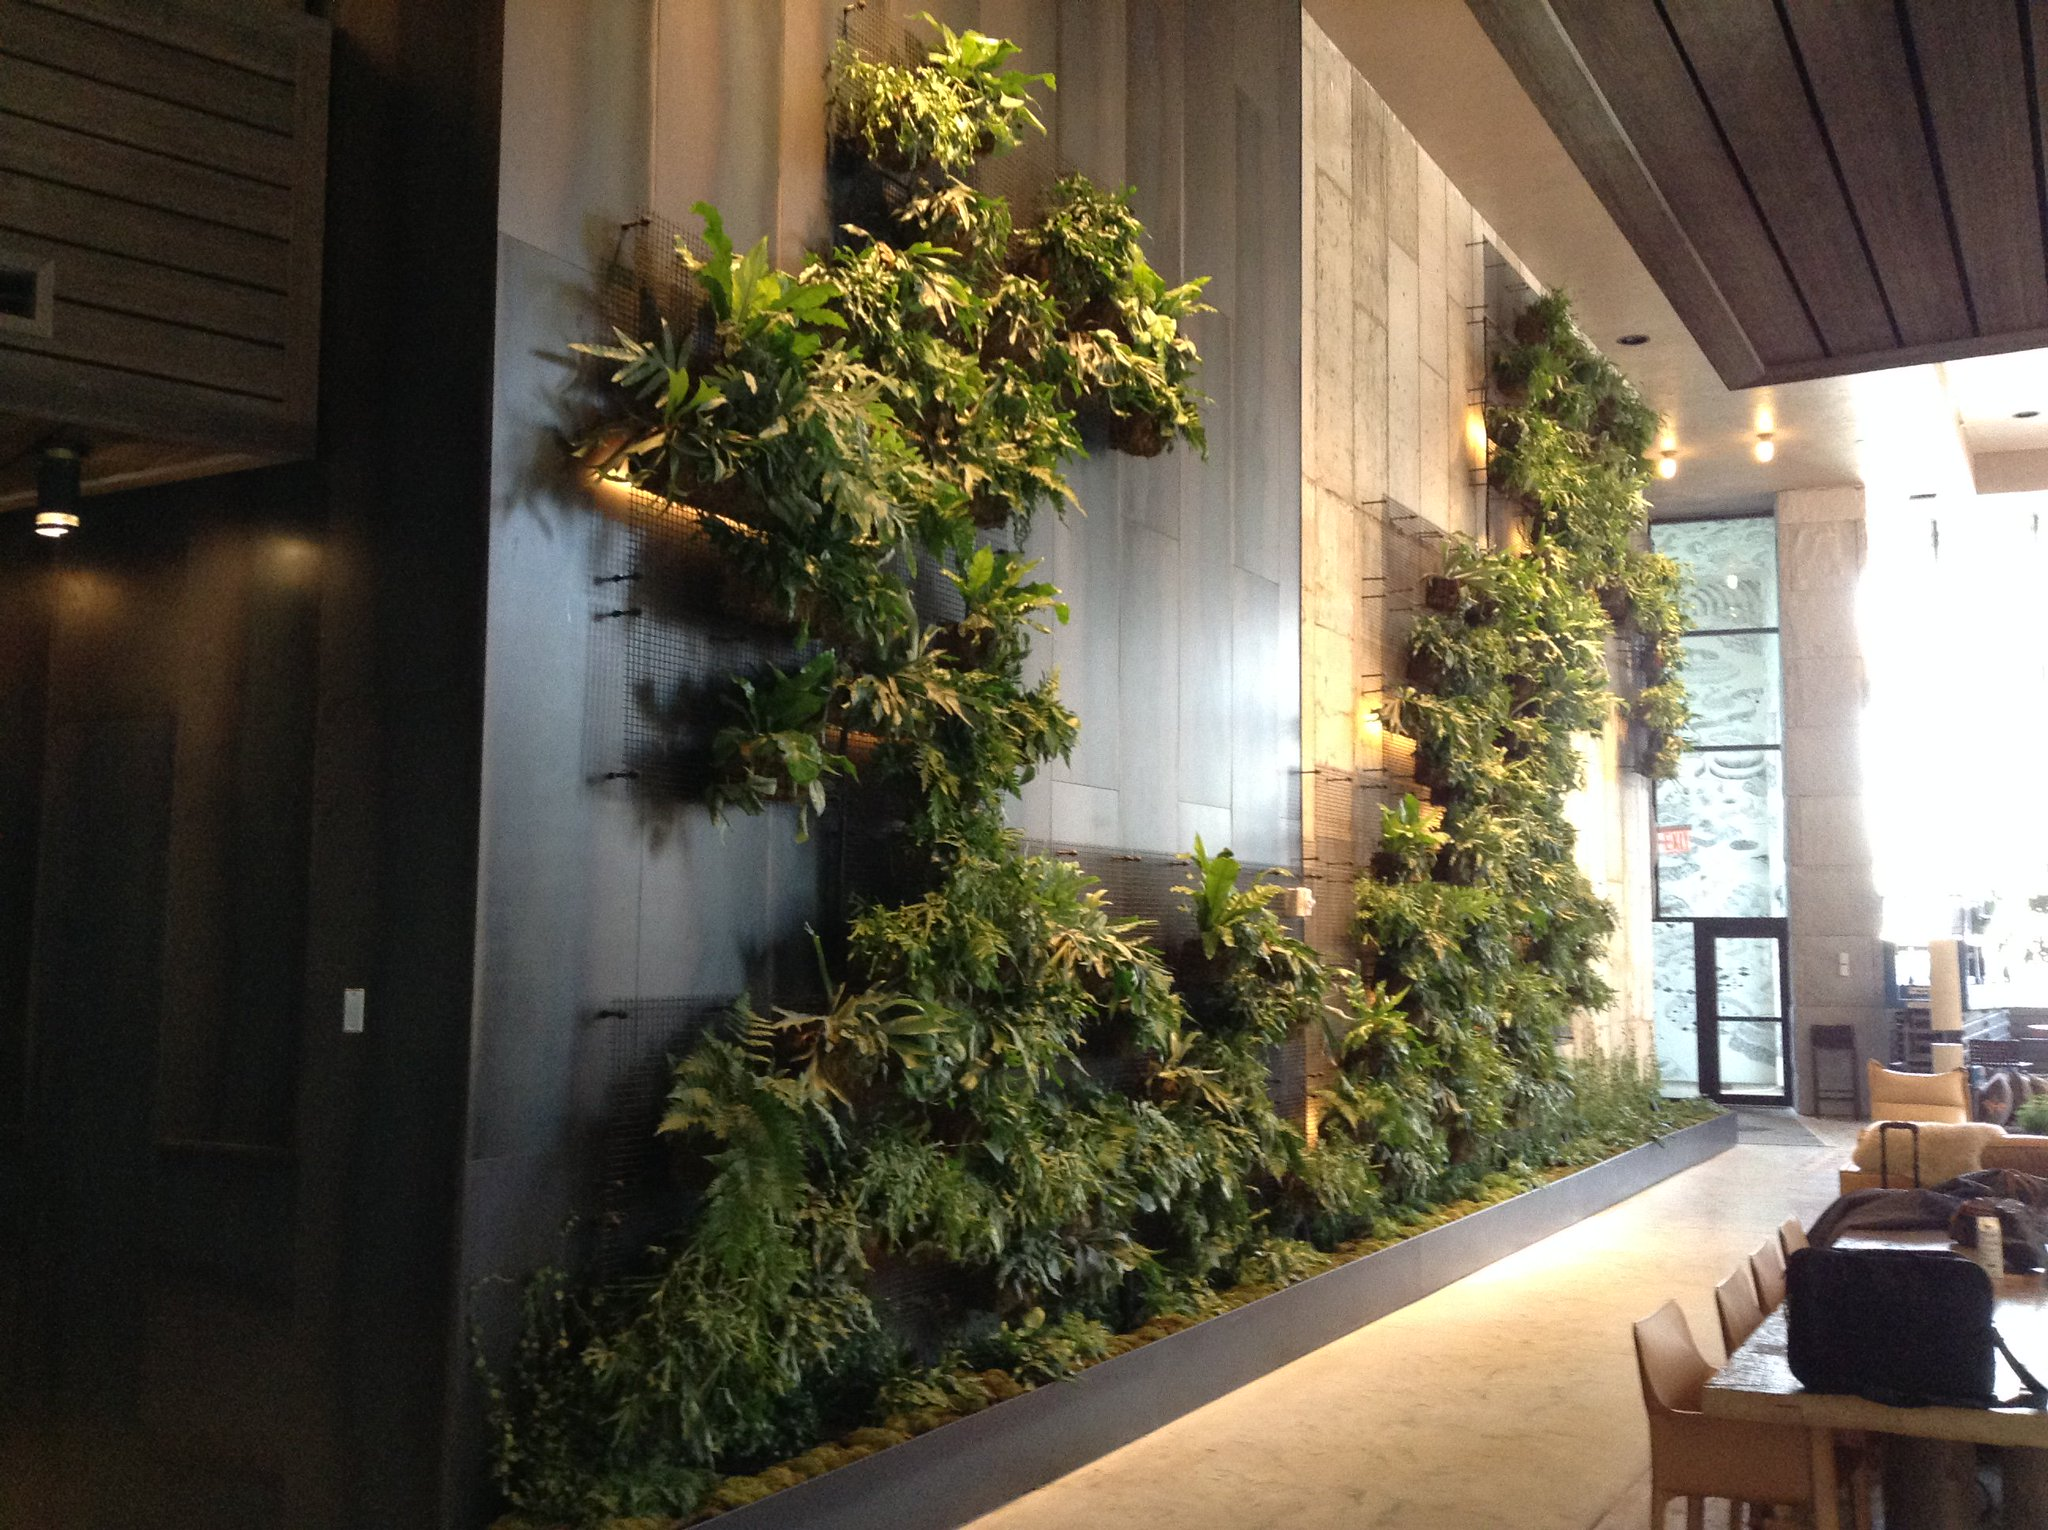 Agroscigreenwalls On Twitter Green Wall At 1 Hotel Brooklyn Bridge Is Done Kudos To Harrison